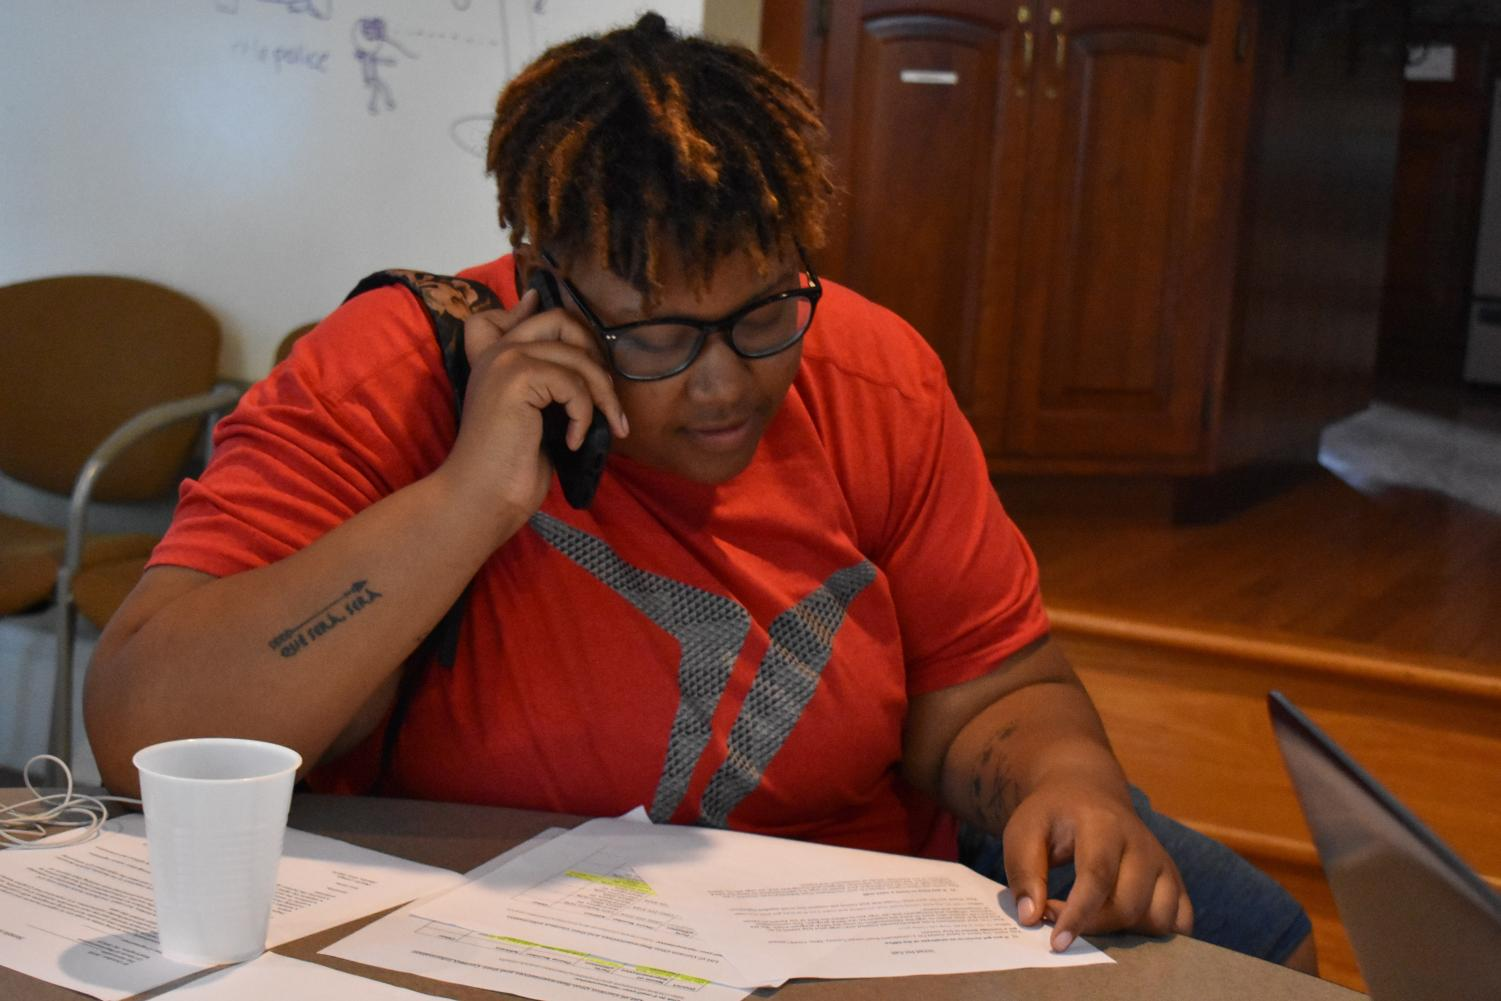 College senior Le'Priya White participates in Call Your Rep Day, an UndocuWeek event meant to encourage local representatives to adopt policies supportive of undocumented immigrants.